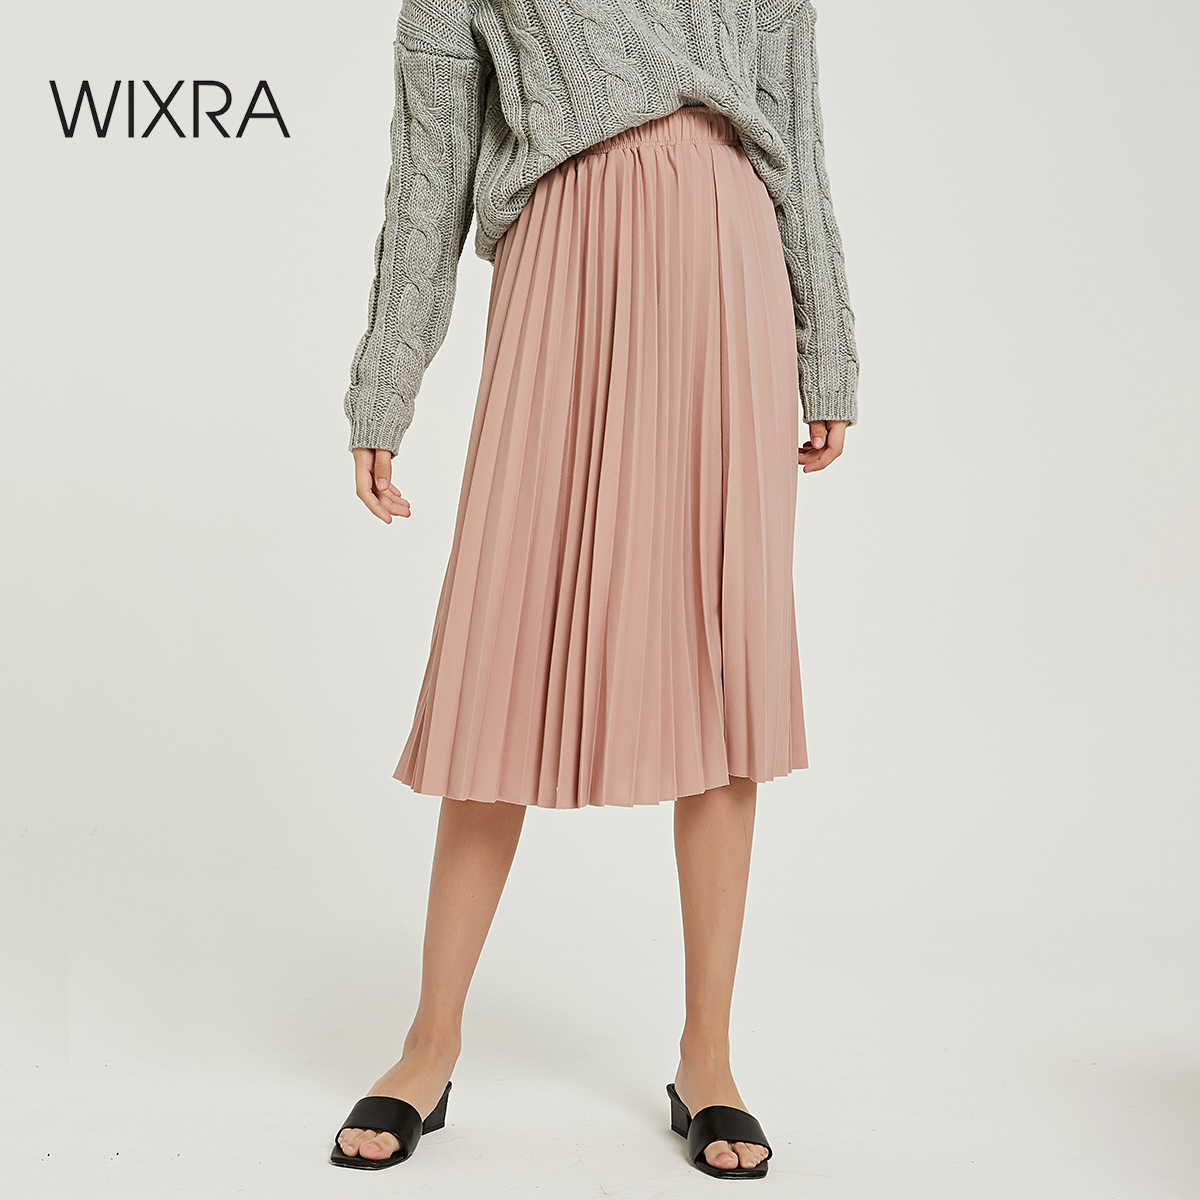 Wixra 2019 New Solid Pleated Skirts High Waist A Line Mid-Calf Skirt Summer Autumn Ladies Bottom